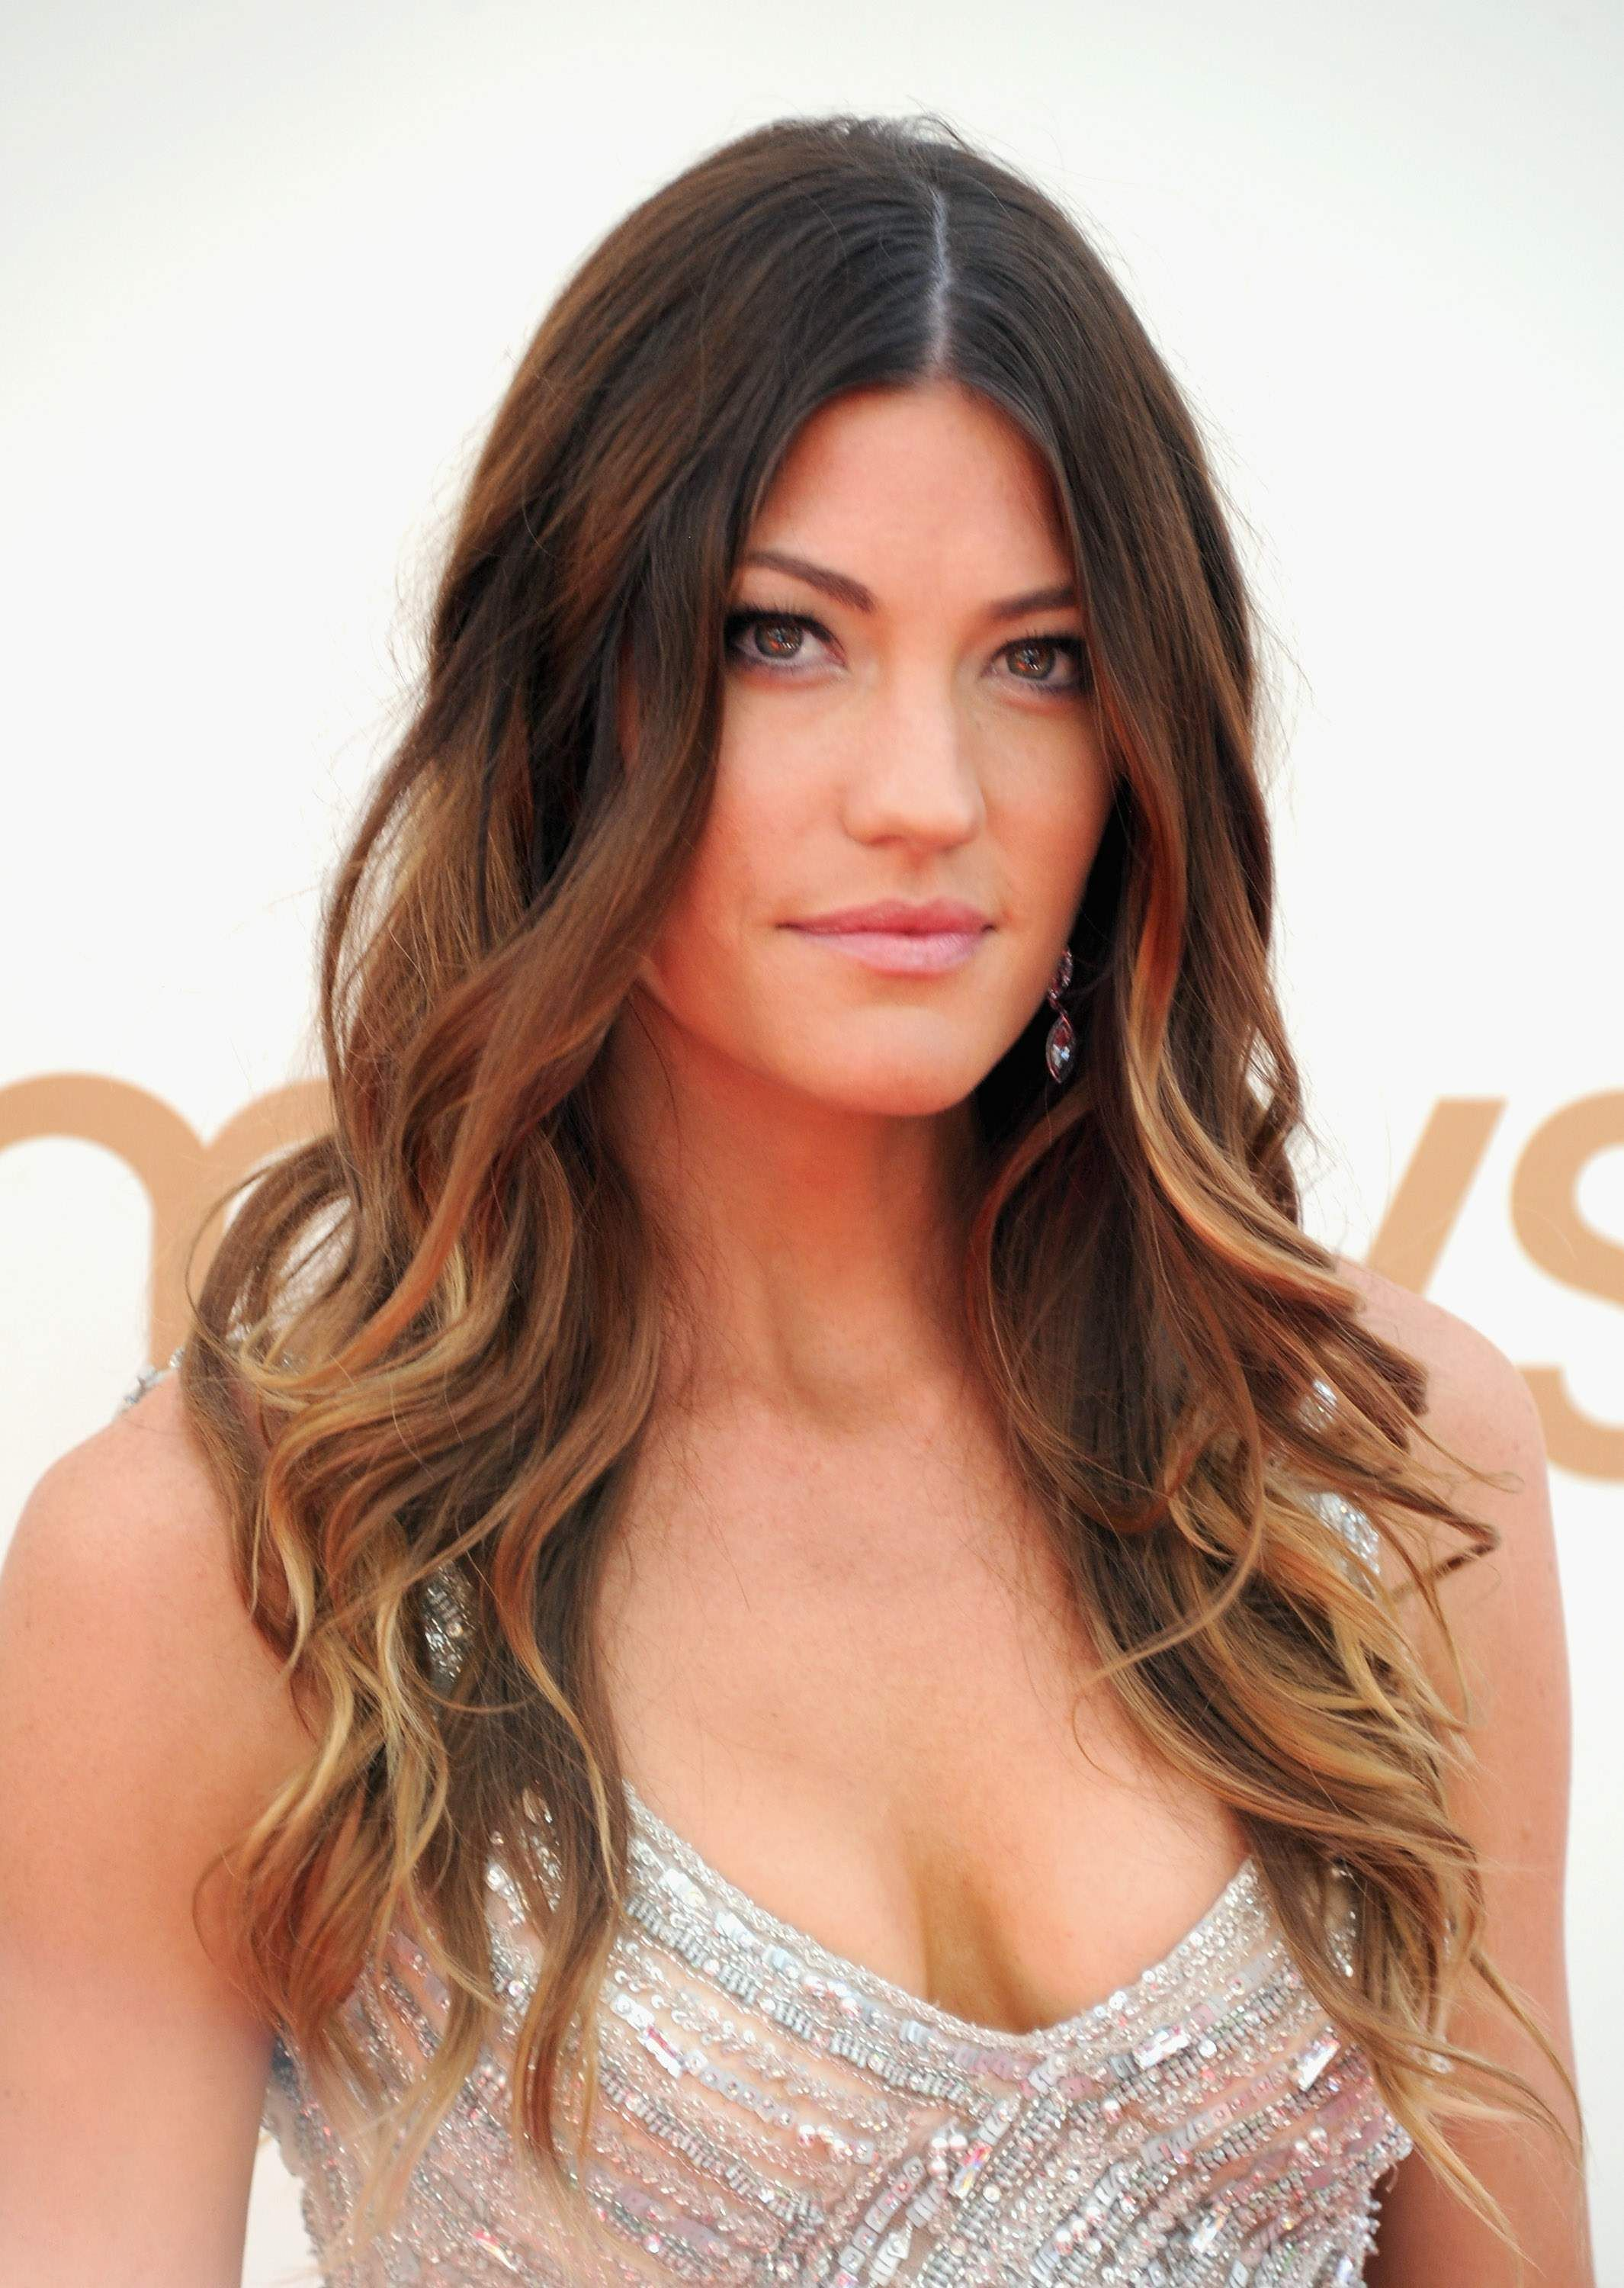 FUNNY Jennifer Carpenter nudes (83 photo), Tits Celebrity picture